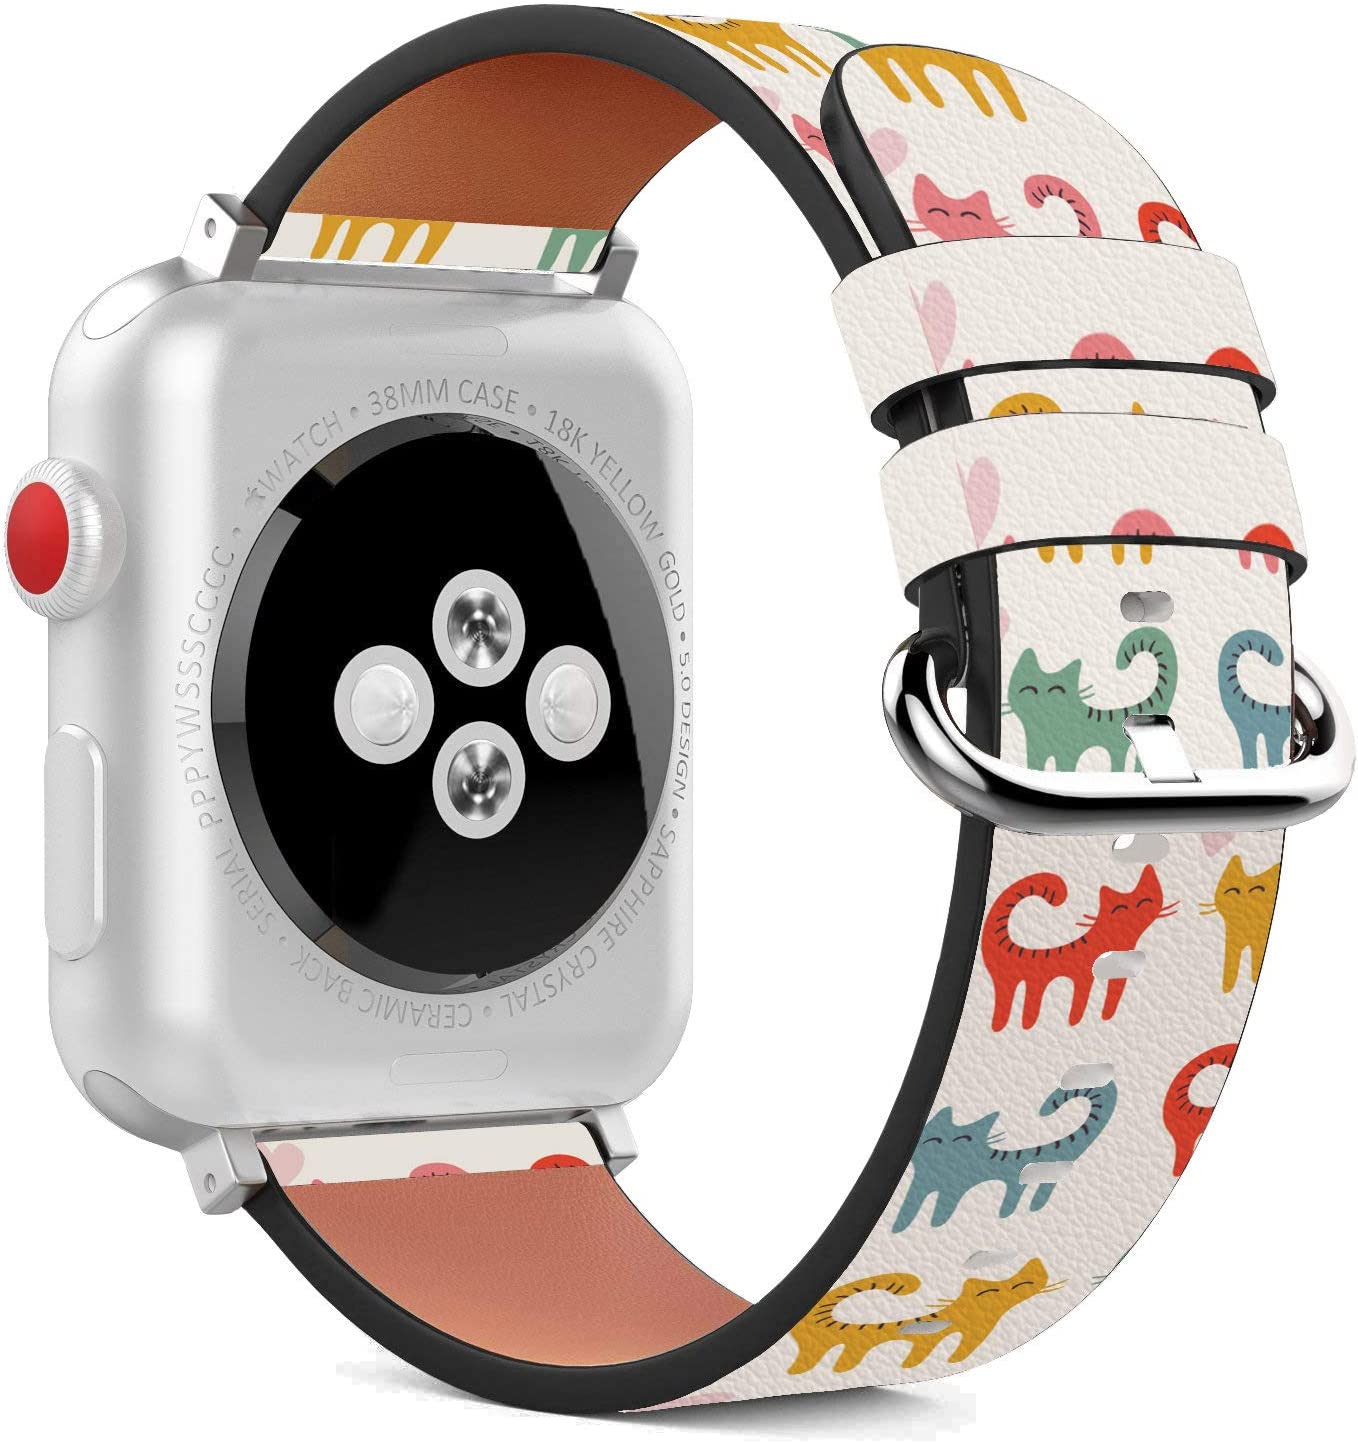 Compatible with Apple Watch - 38mm / 40mm (Serie 5,4,3,2,1) Leather Wristband Bracelet with Stainless Steel Clasp and Adapters - Curly Tail Cats